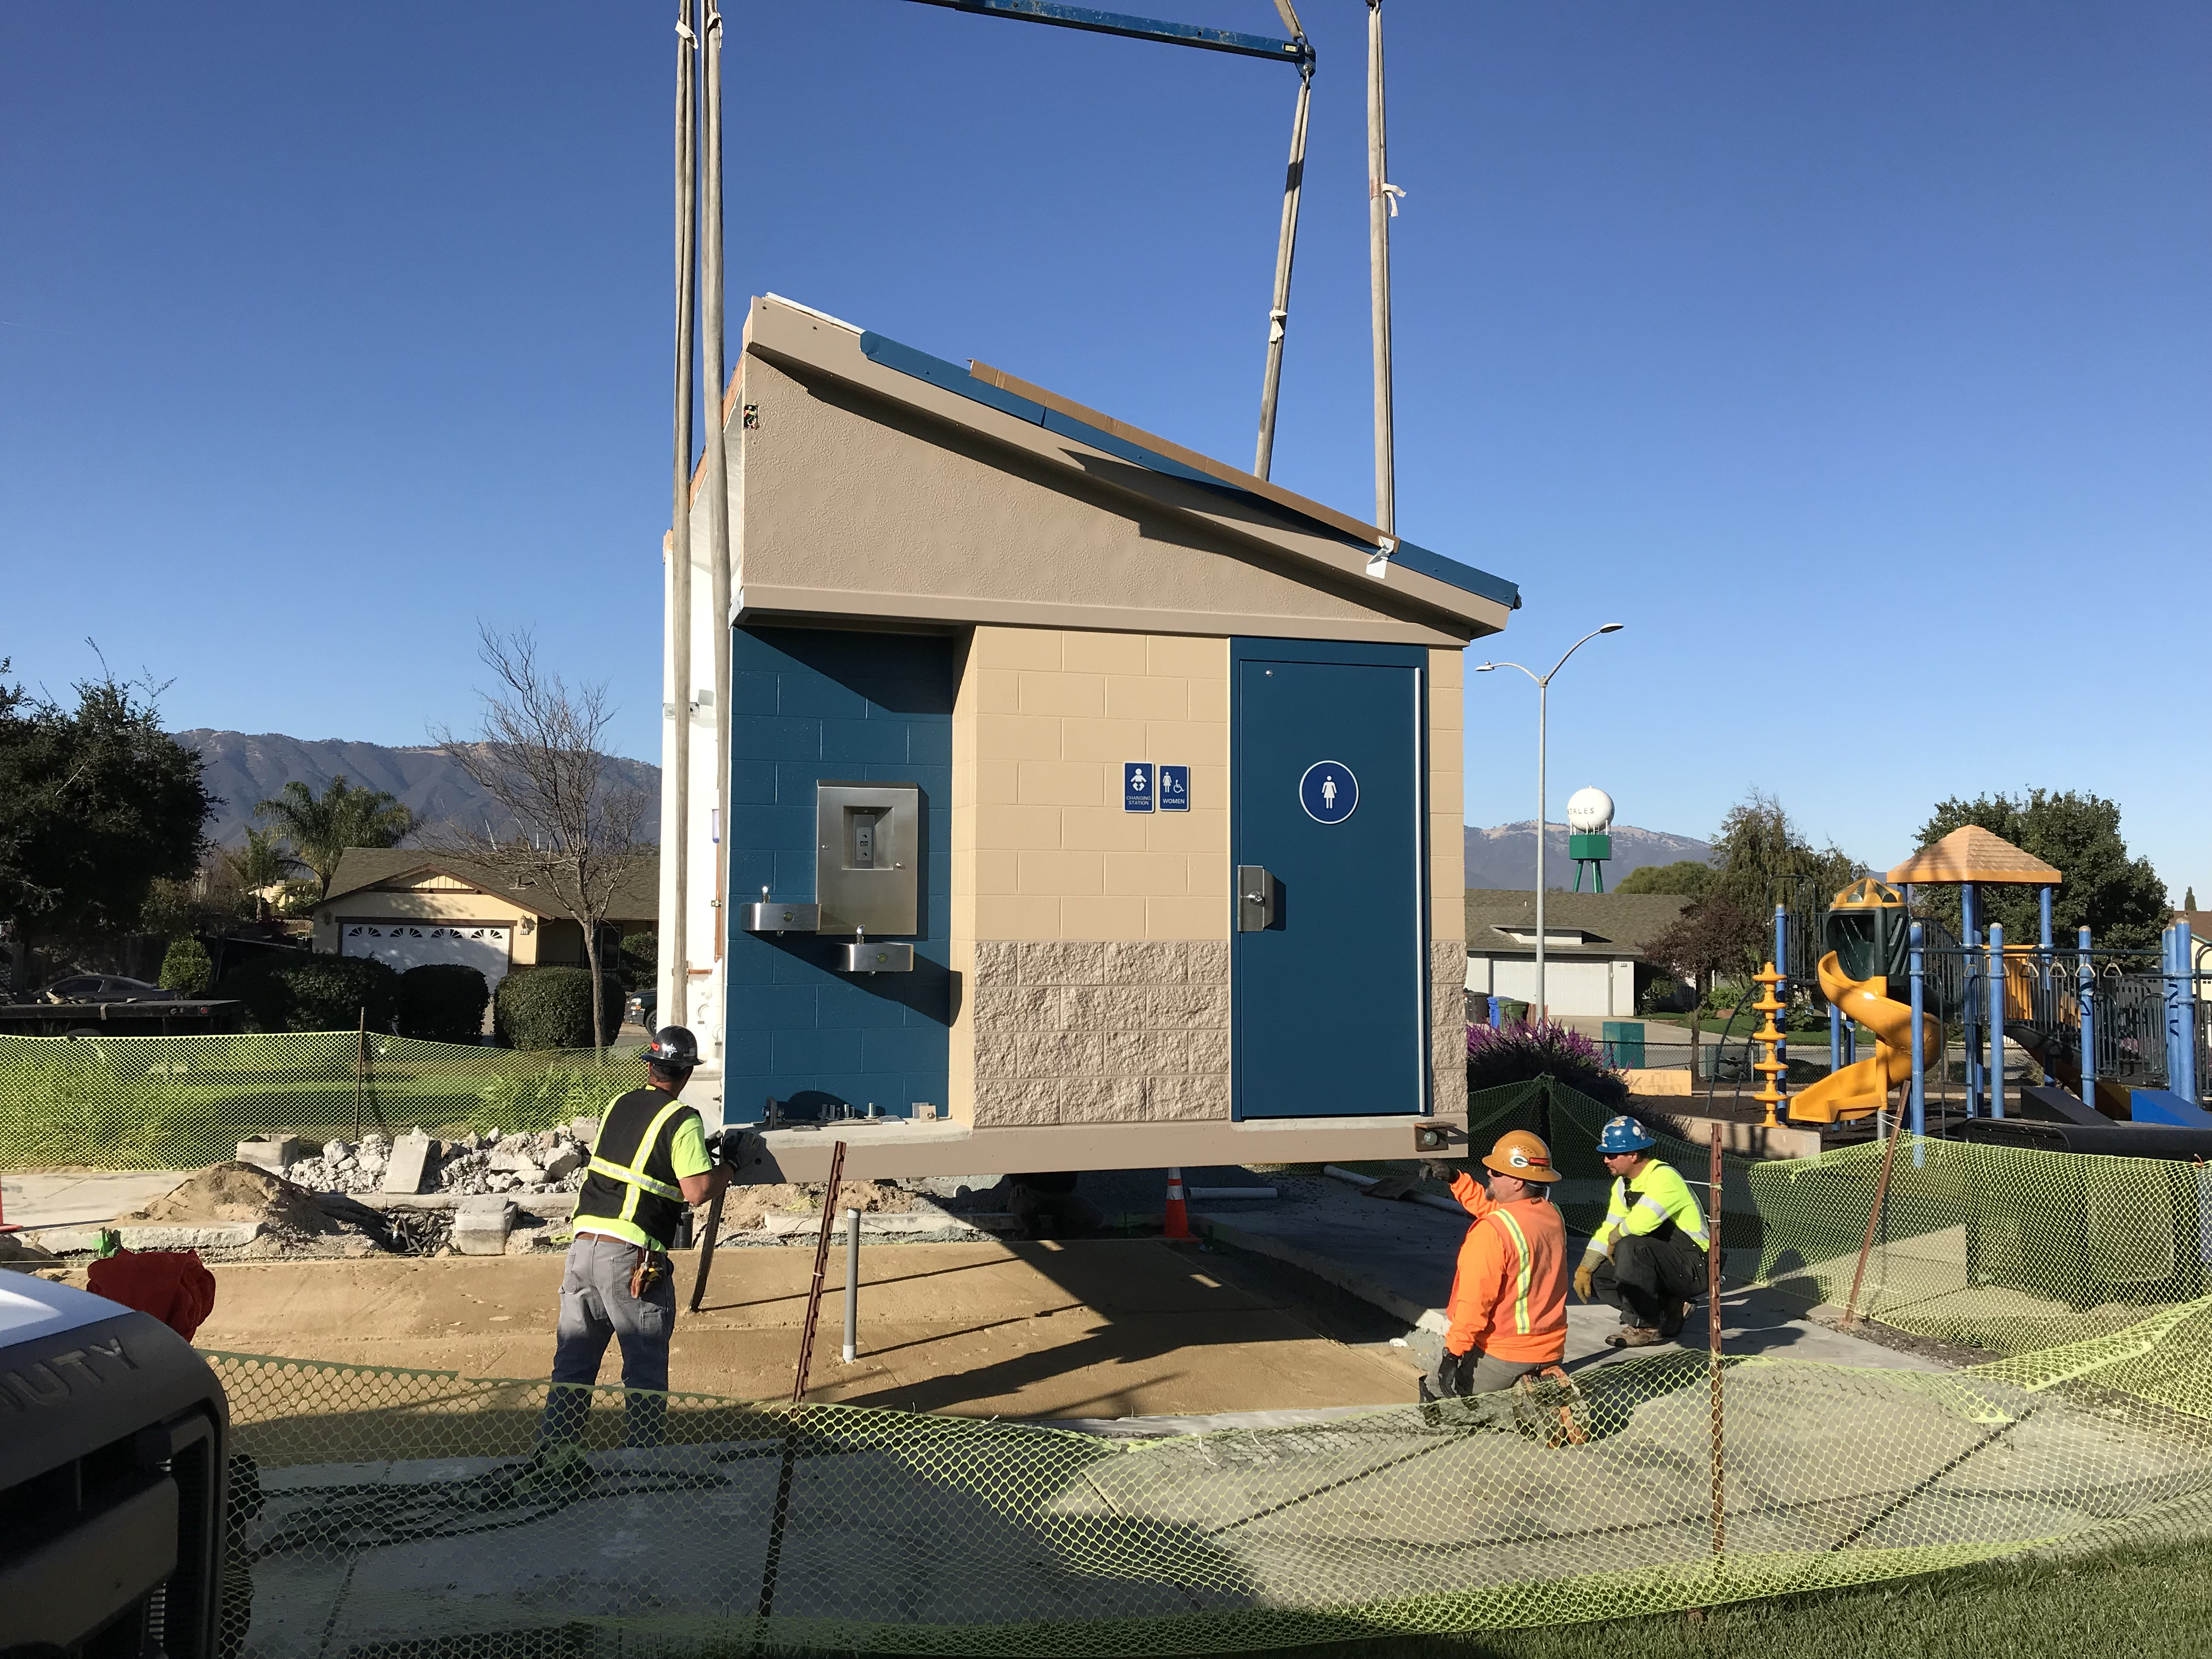 Restroom being placed in position